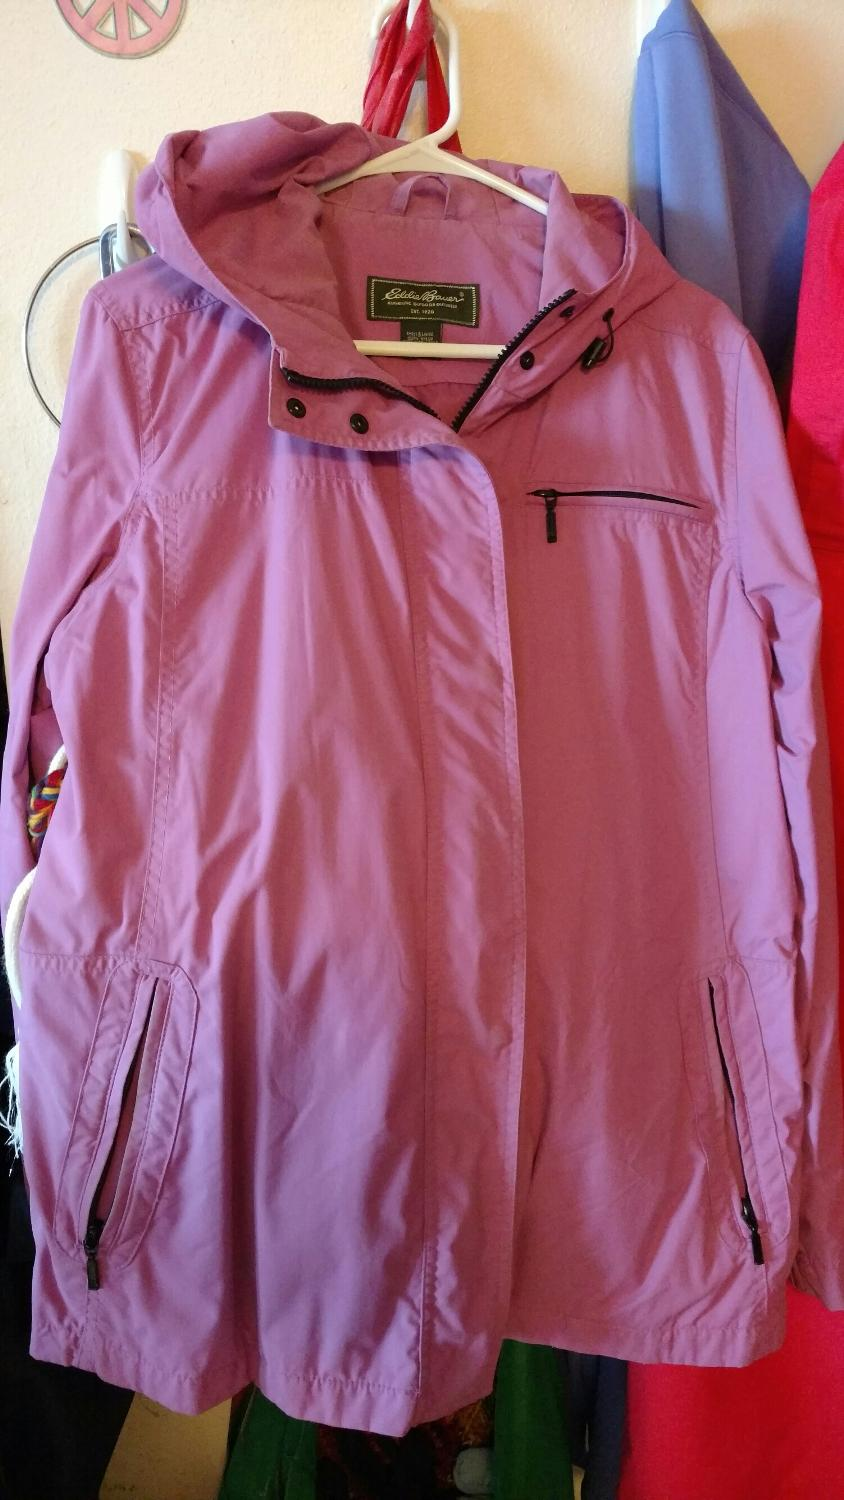 Best Eddie Bauer Xl Windbreaker Jacket For Sale In Minot